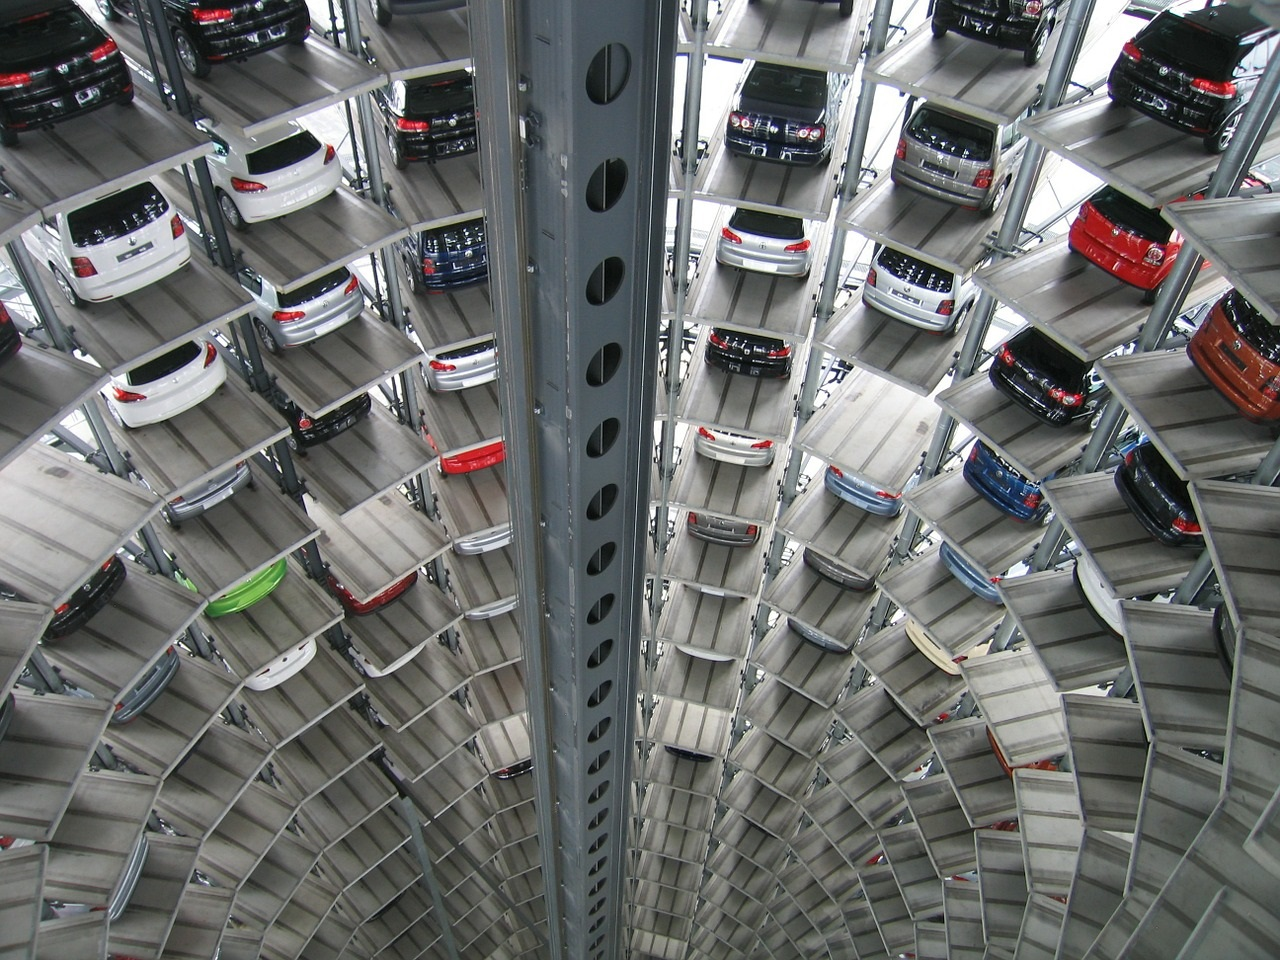 A photo of a large multi-storey car park with many cars